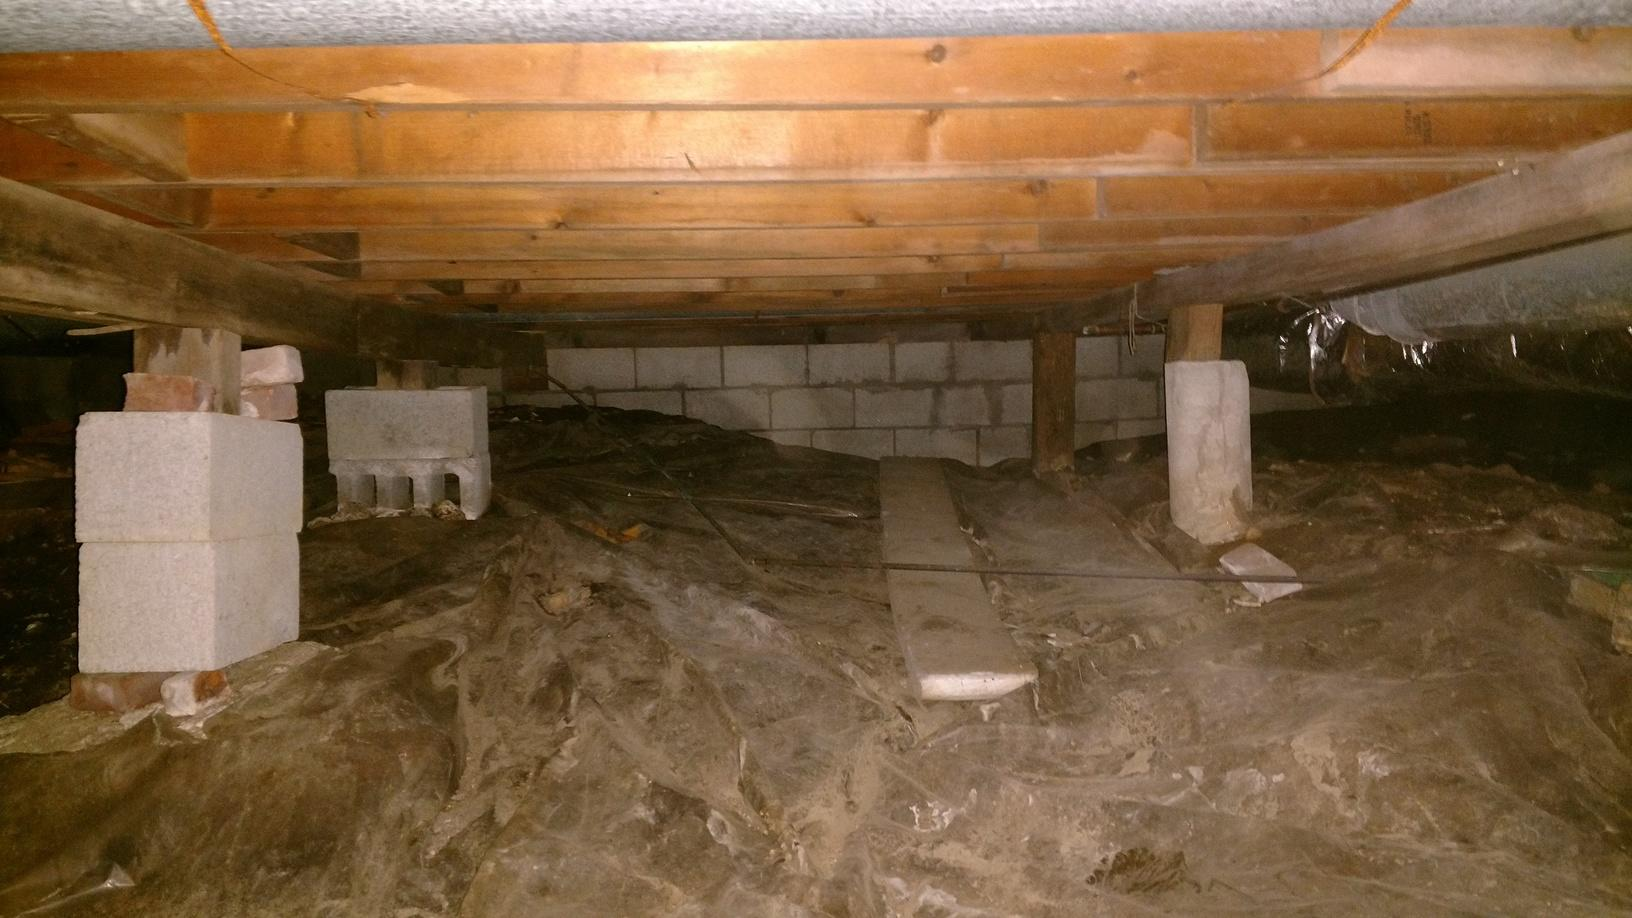 Crawlspace Clean-Up - Before Photo